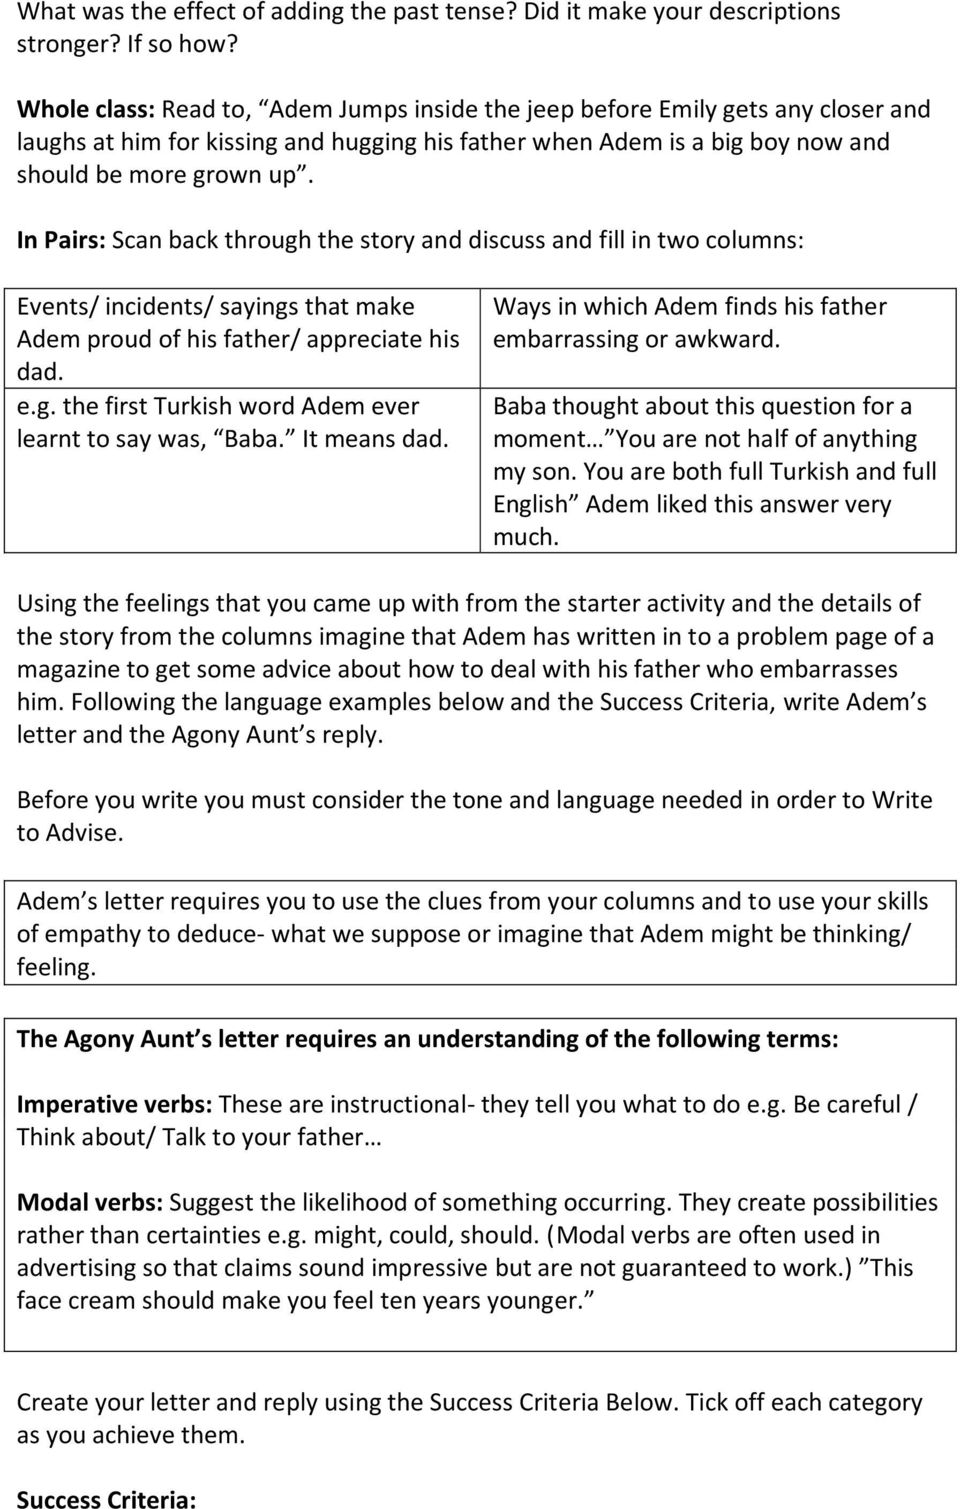 In Pairs: Scan back through the story and discuss and fill in two columns: Events/ incidents/ sayings that make Adem proud of his father/ appreciate his dad. e.g. the first Turkish word Adem ever learnt to say was, Baba.